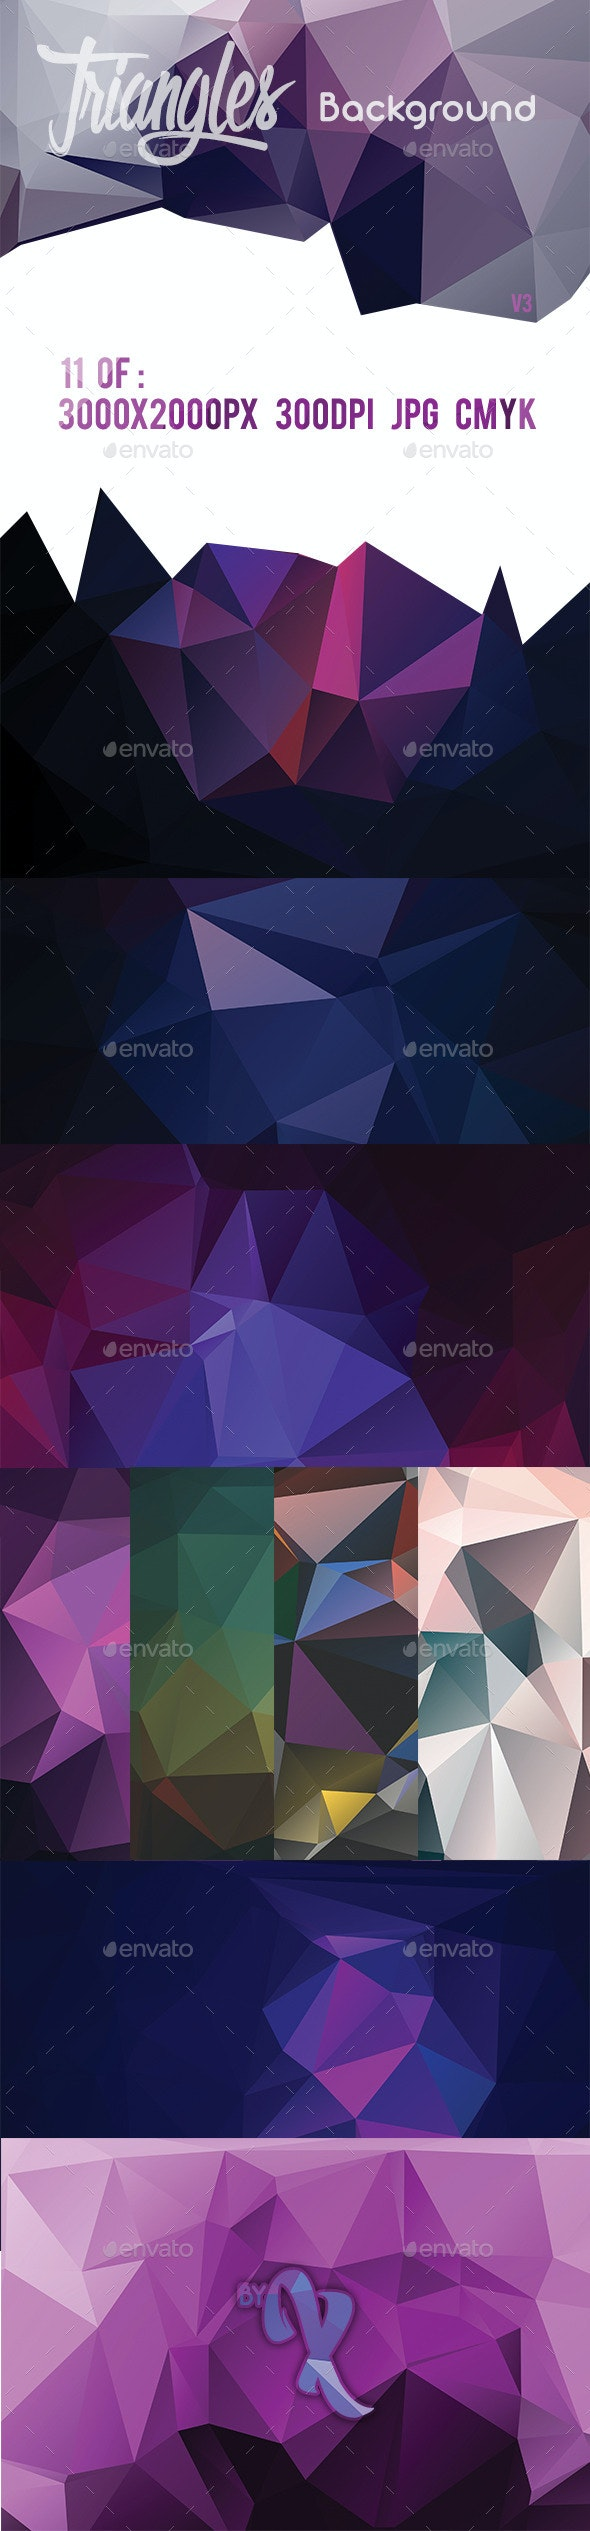 11 Triangles Background V3 - Abstract Backgrounds